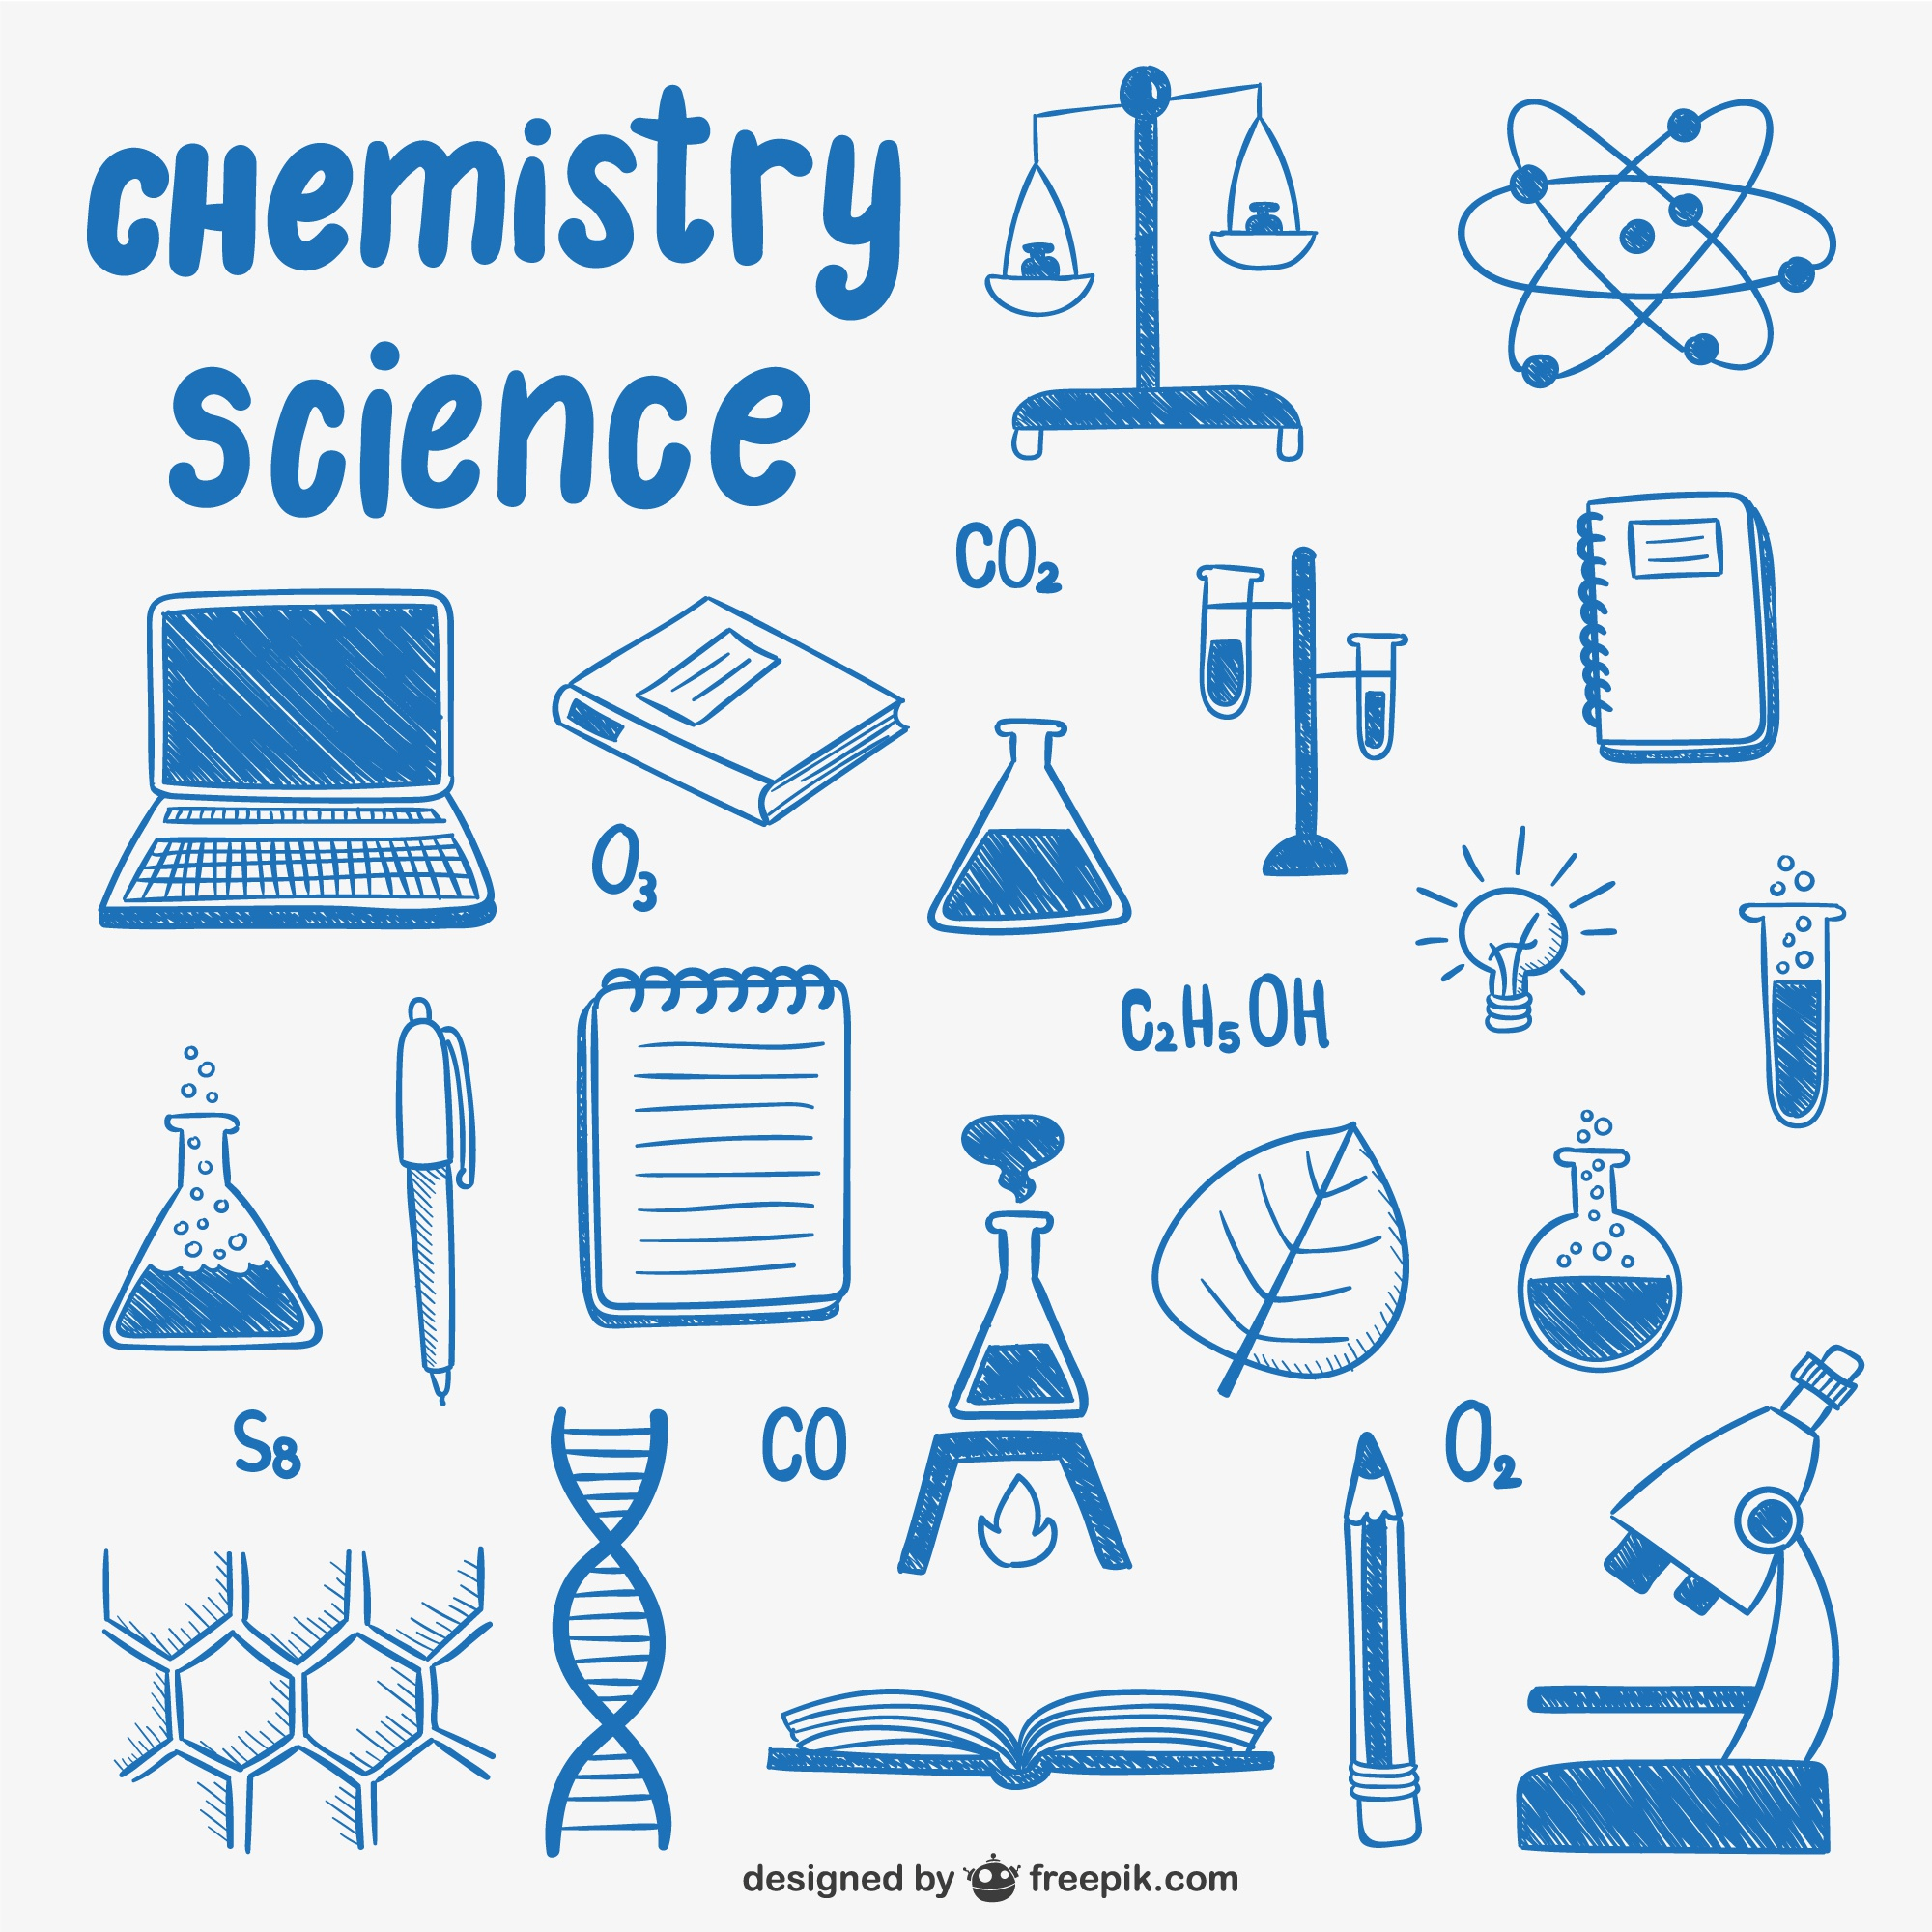 Chemistry and science elements